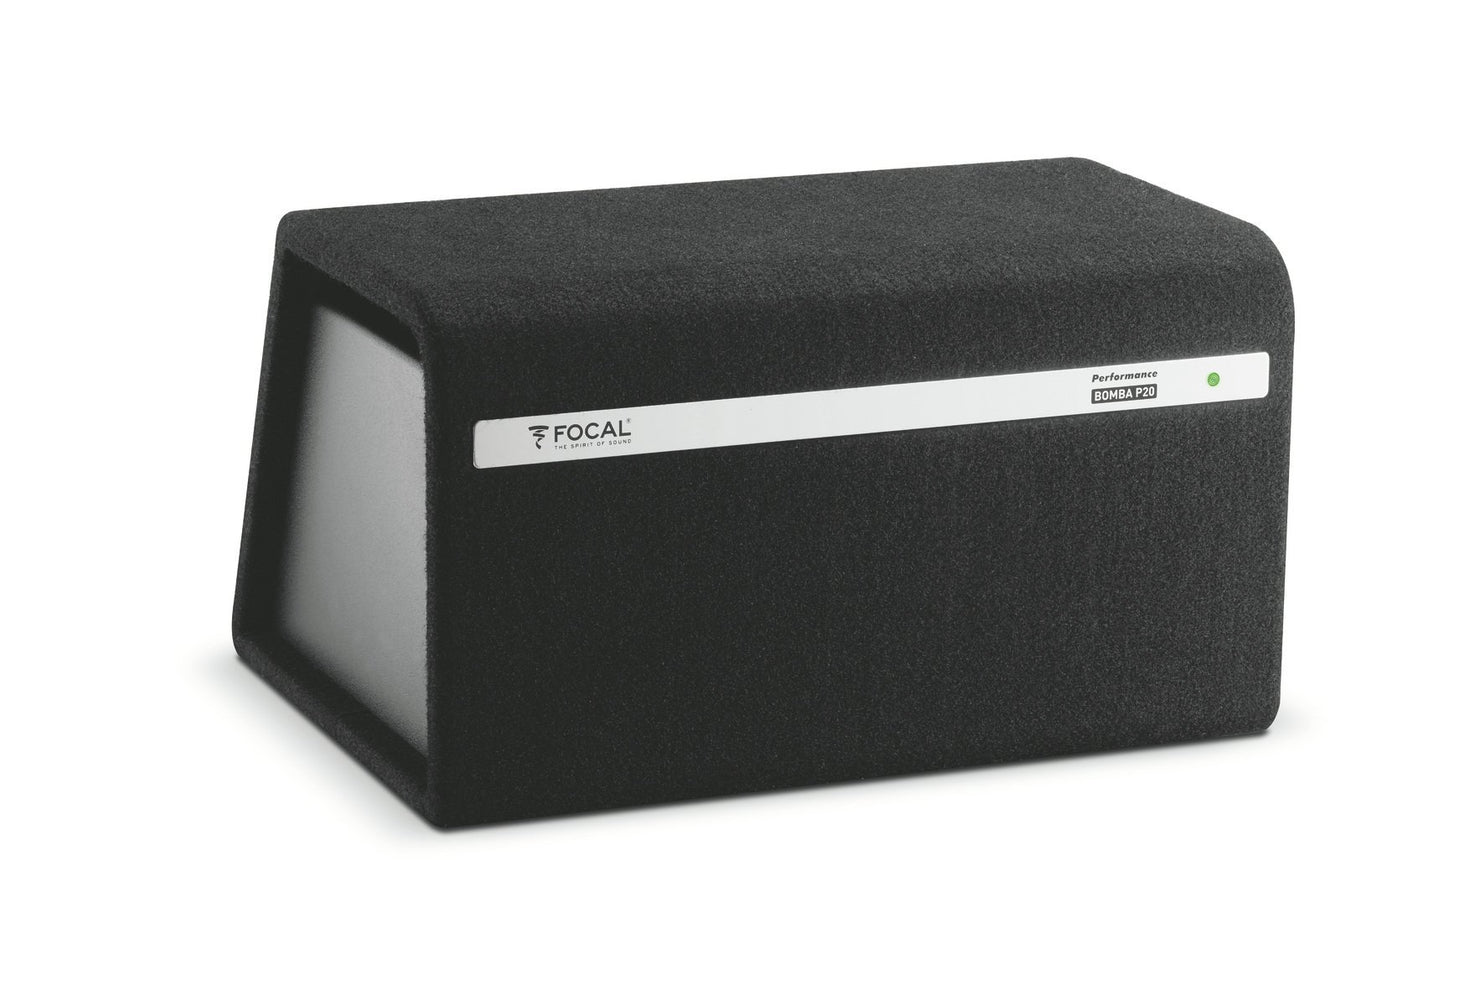 "FOCAL Bomba BP20 8"" 150W Active Subwoofer Box"